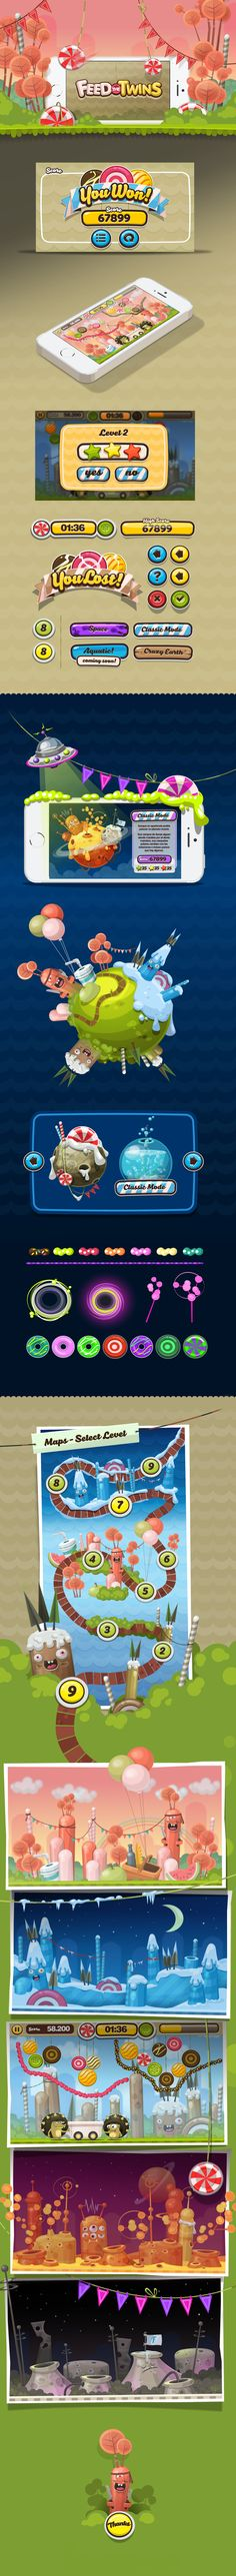 Mobile Game: Full Game Art - Backgrounds- Characters- UI- Logotype